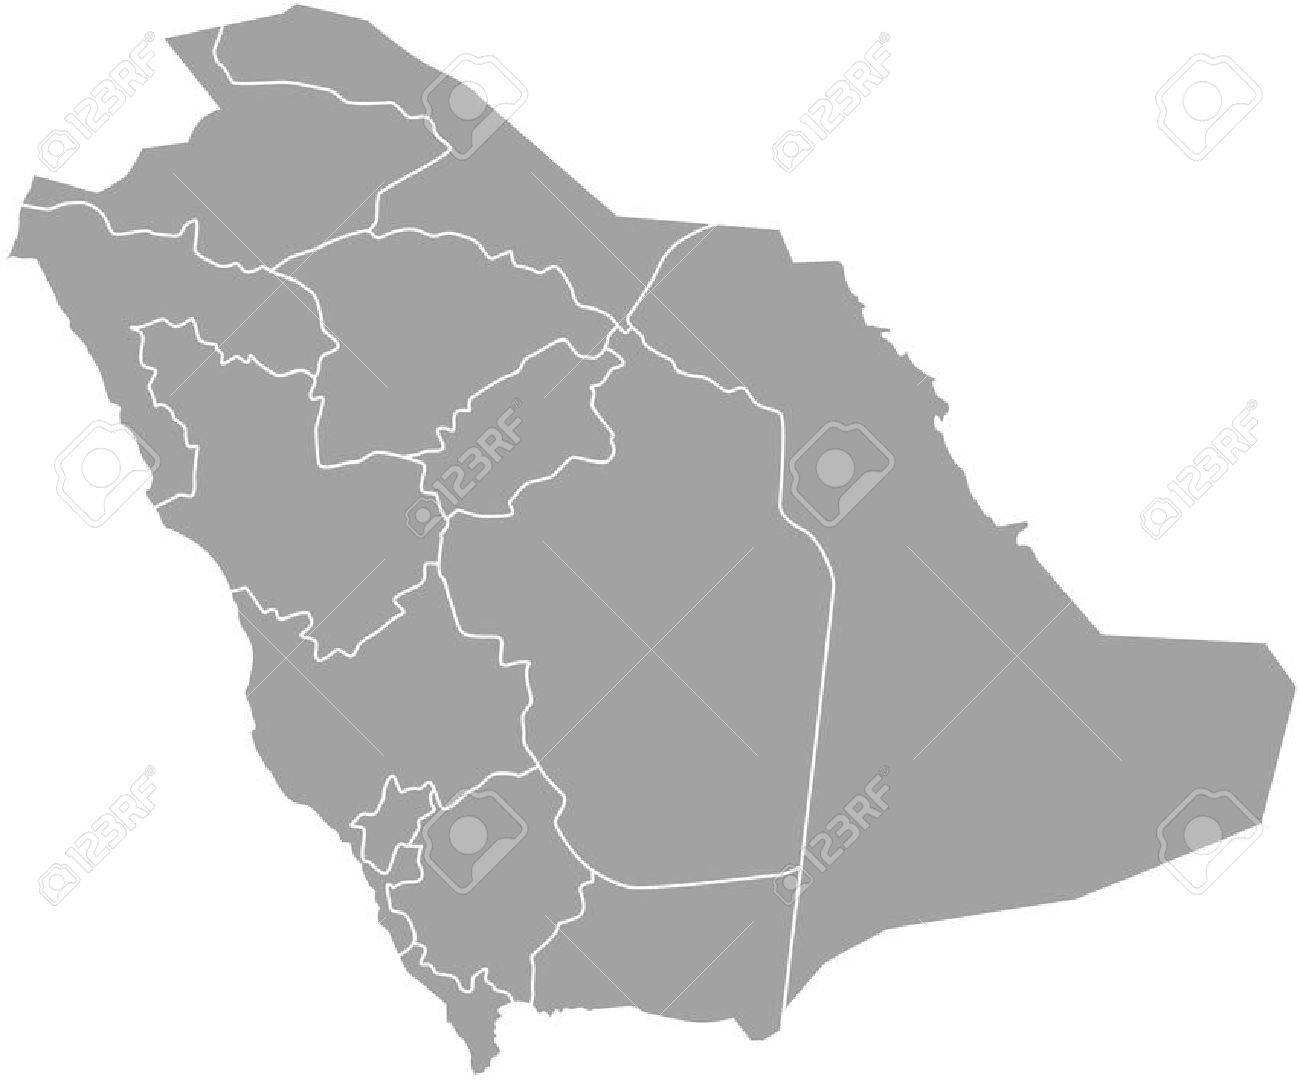 Saudi Arabia Map Outline Vector With Borders Of Provinces Or     Saudi Arabia map outline vector with borders of provinces or states Stock  Vector   51018456